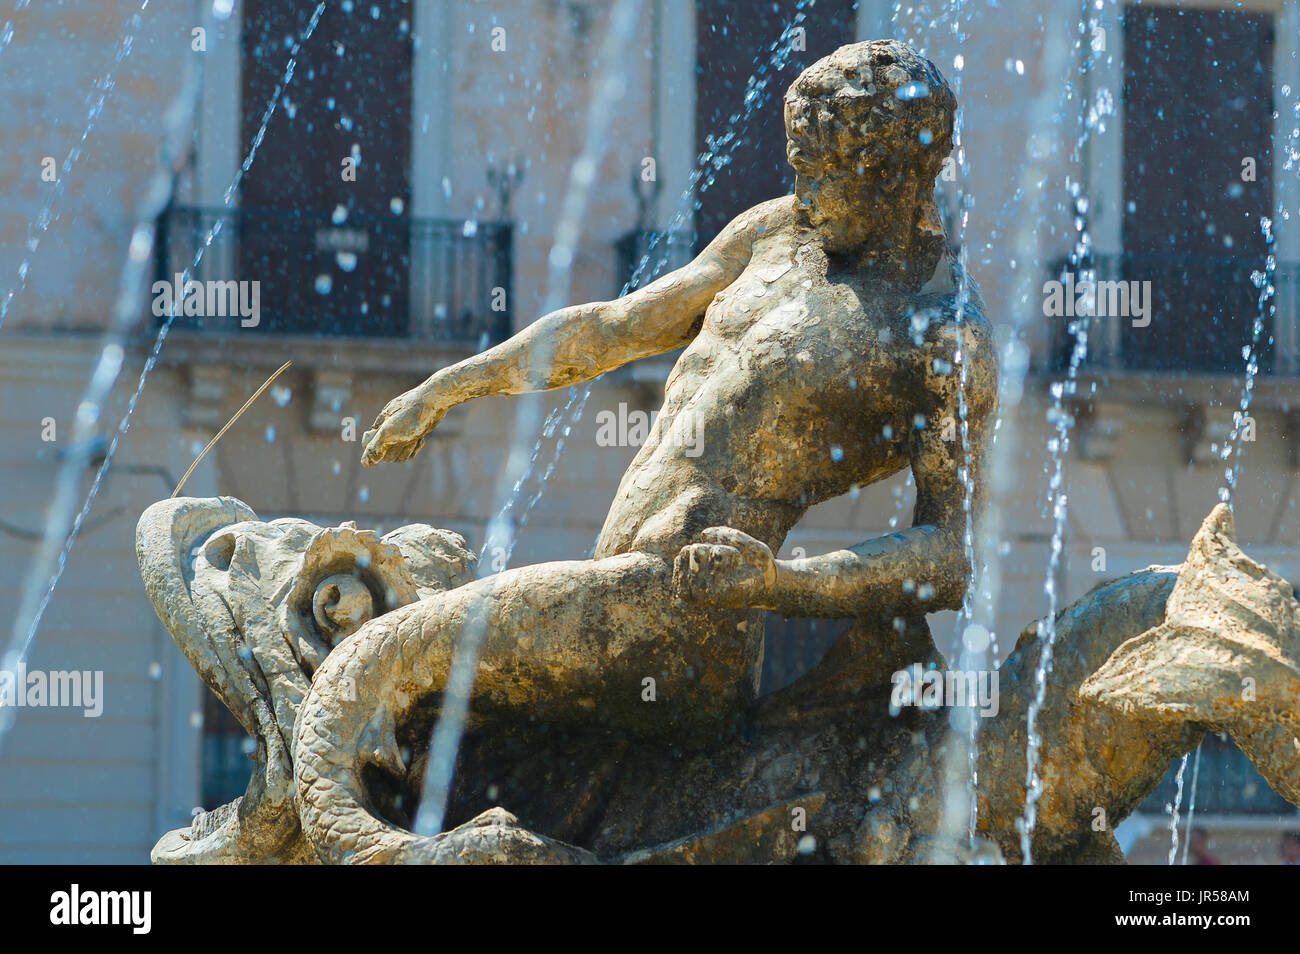 Sicily piazza, detail of a mythological figure in the Artemis Fountain in the Piazza Archimede, Ortigia Island, Syracuse (Siracusa) Sicily. - Stock Image